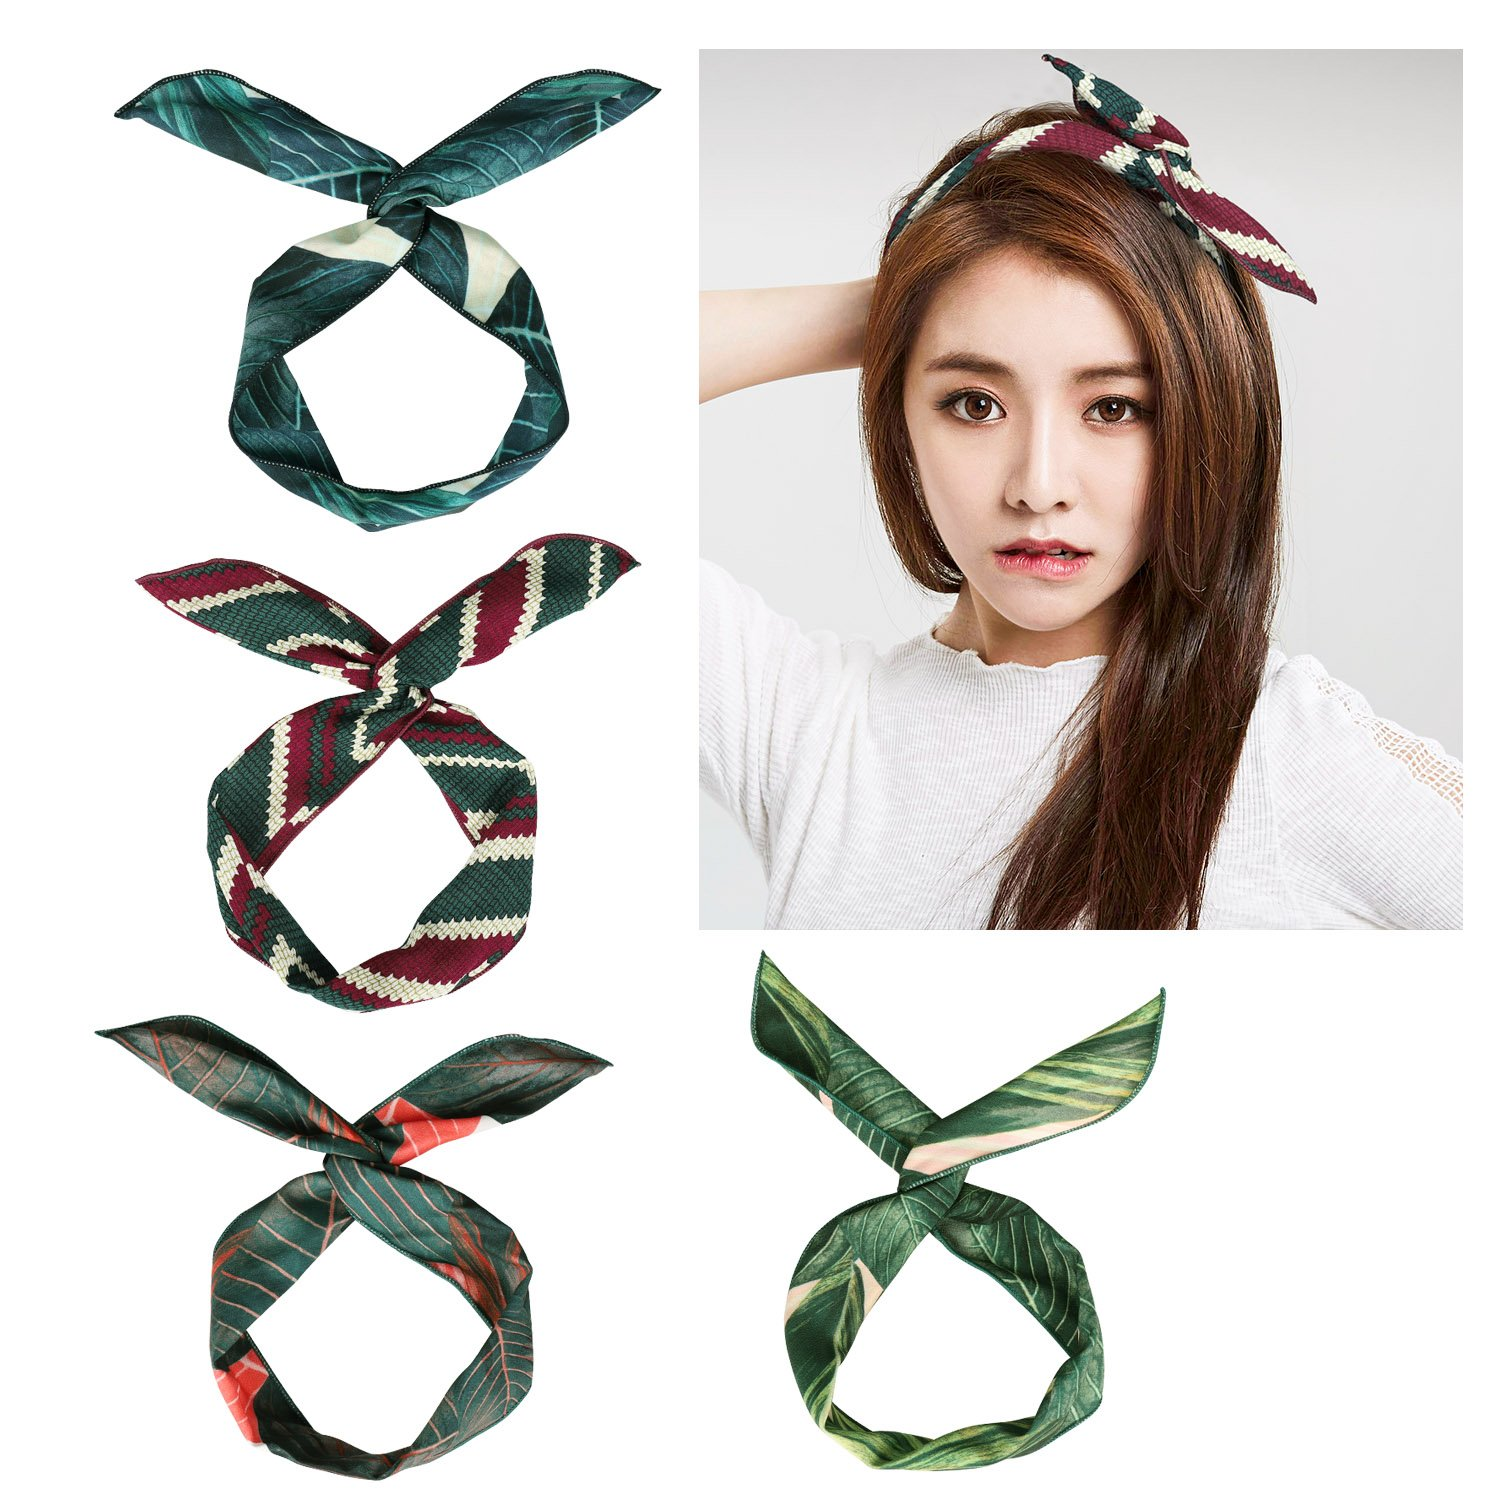 4 Pack Retro Headband, Boho Style Hair Band Wrap for Women and Girl YaFex